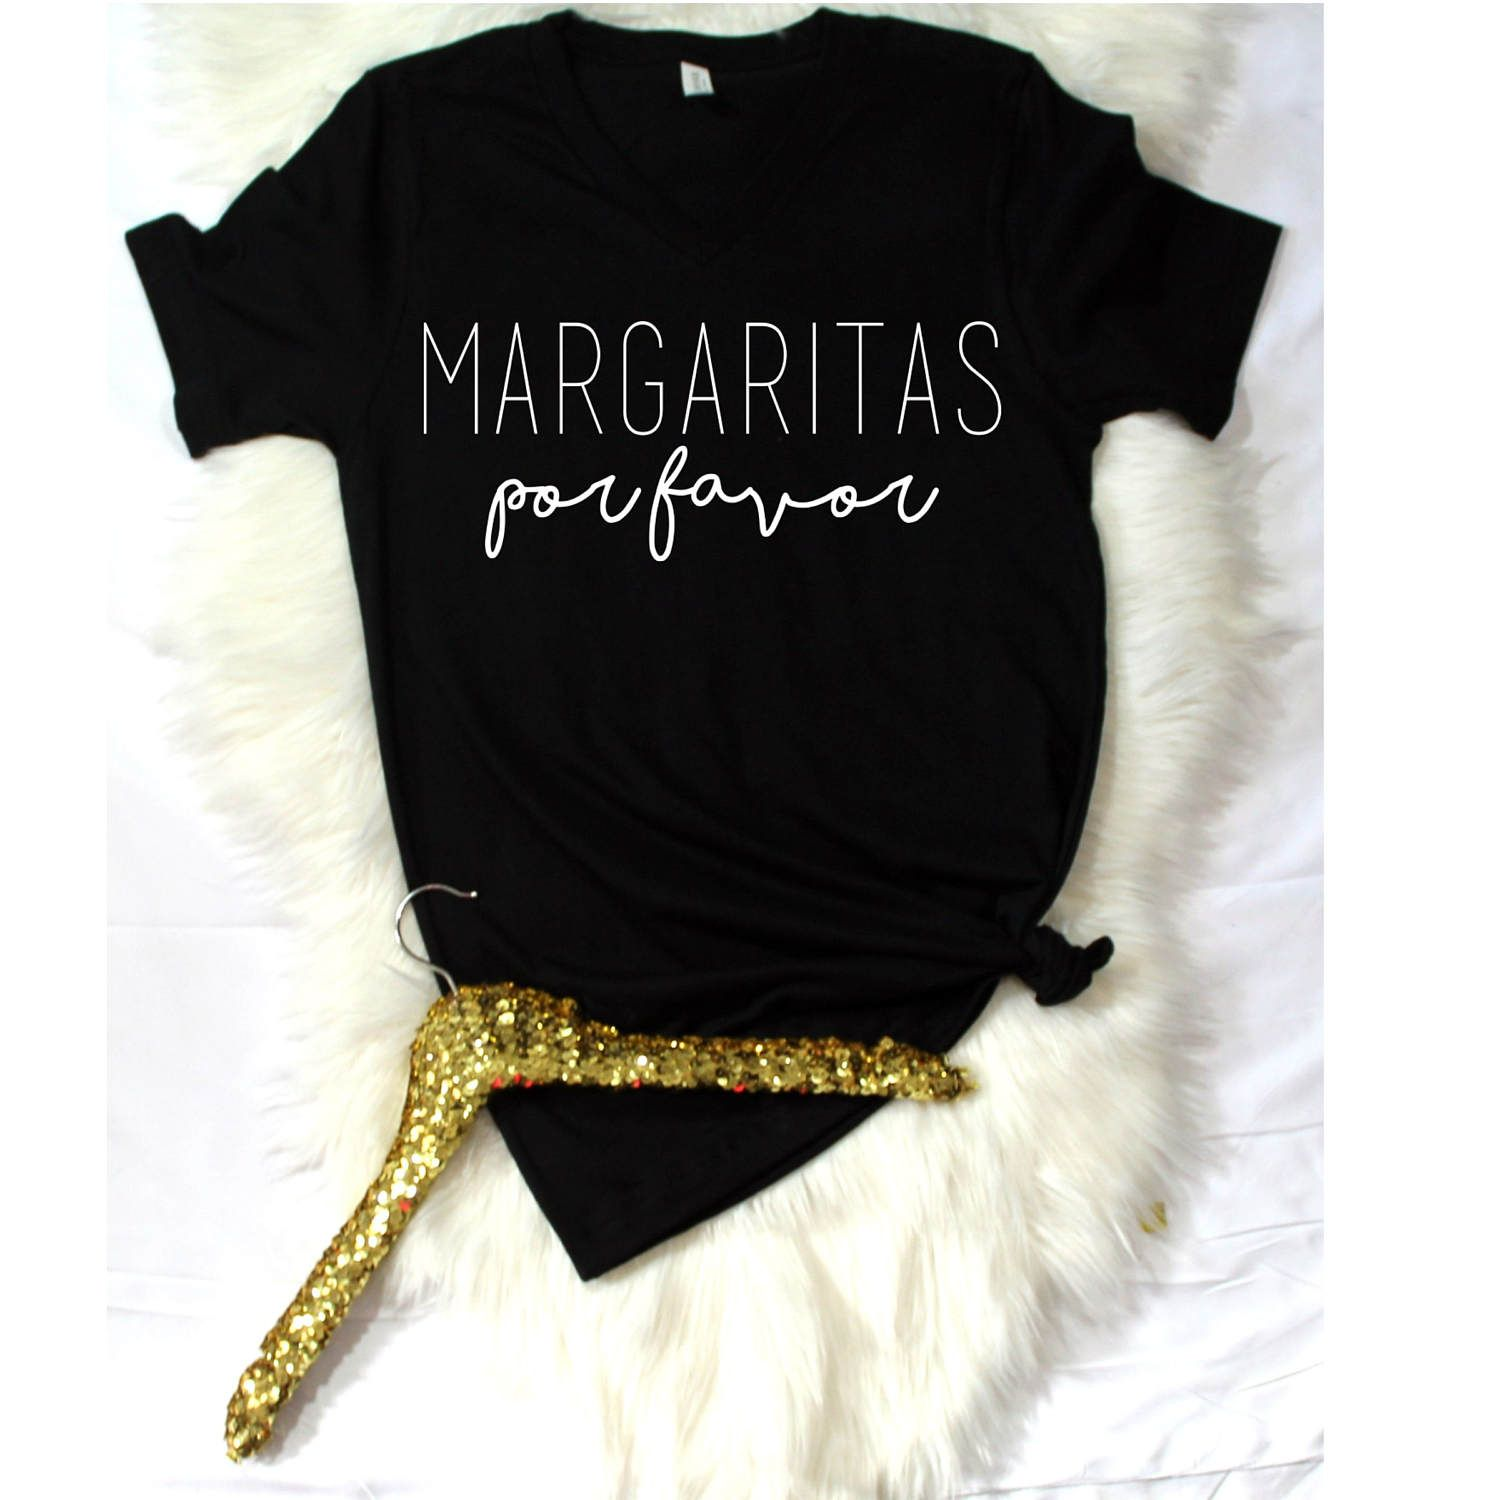 ec336422 Margaritas Por Favor Unisex T-Shirt, Cinco De Mayo Shirt, S-2XL, Beer Shirt,  Cinco De Mayo, Funny Shirt, Craft Beer, Tequila Shirt by ShopatBash on Etsy